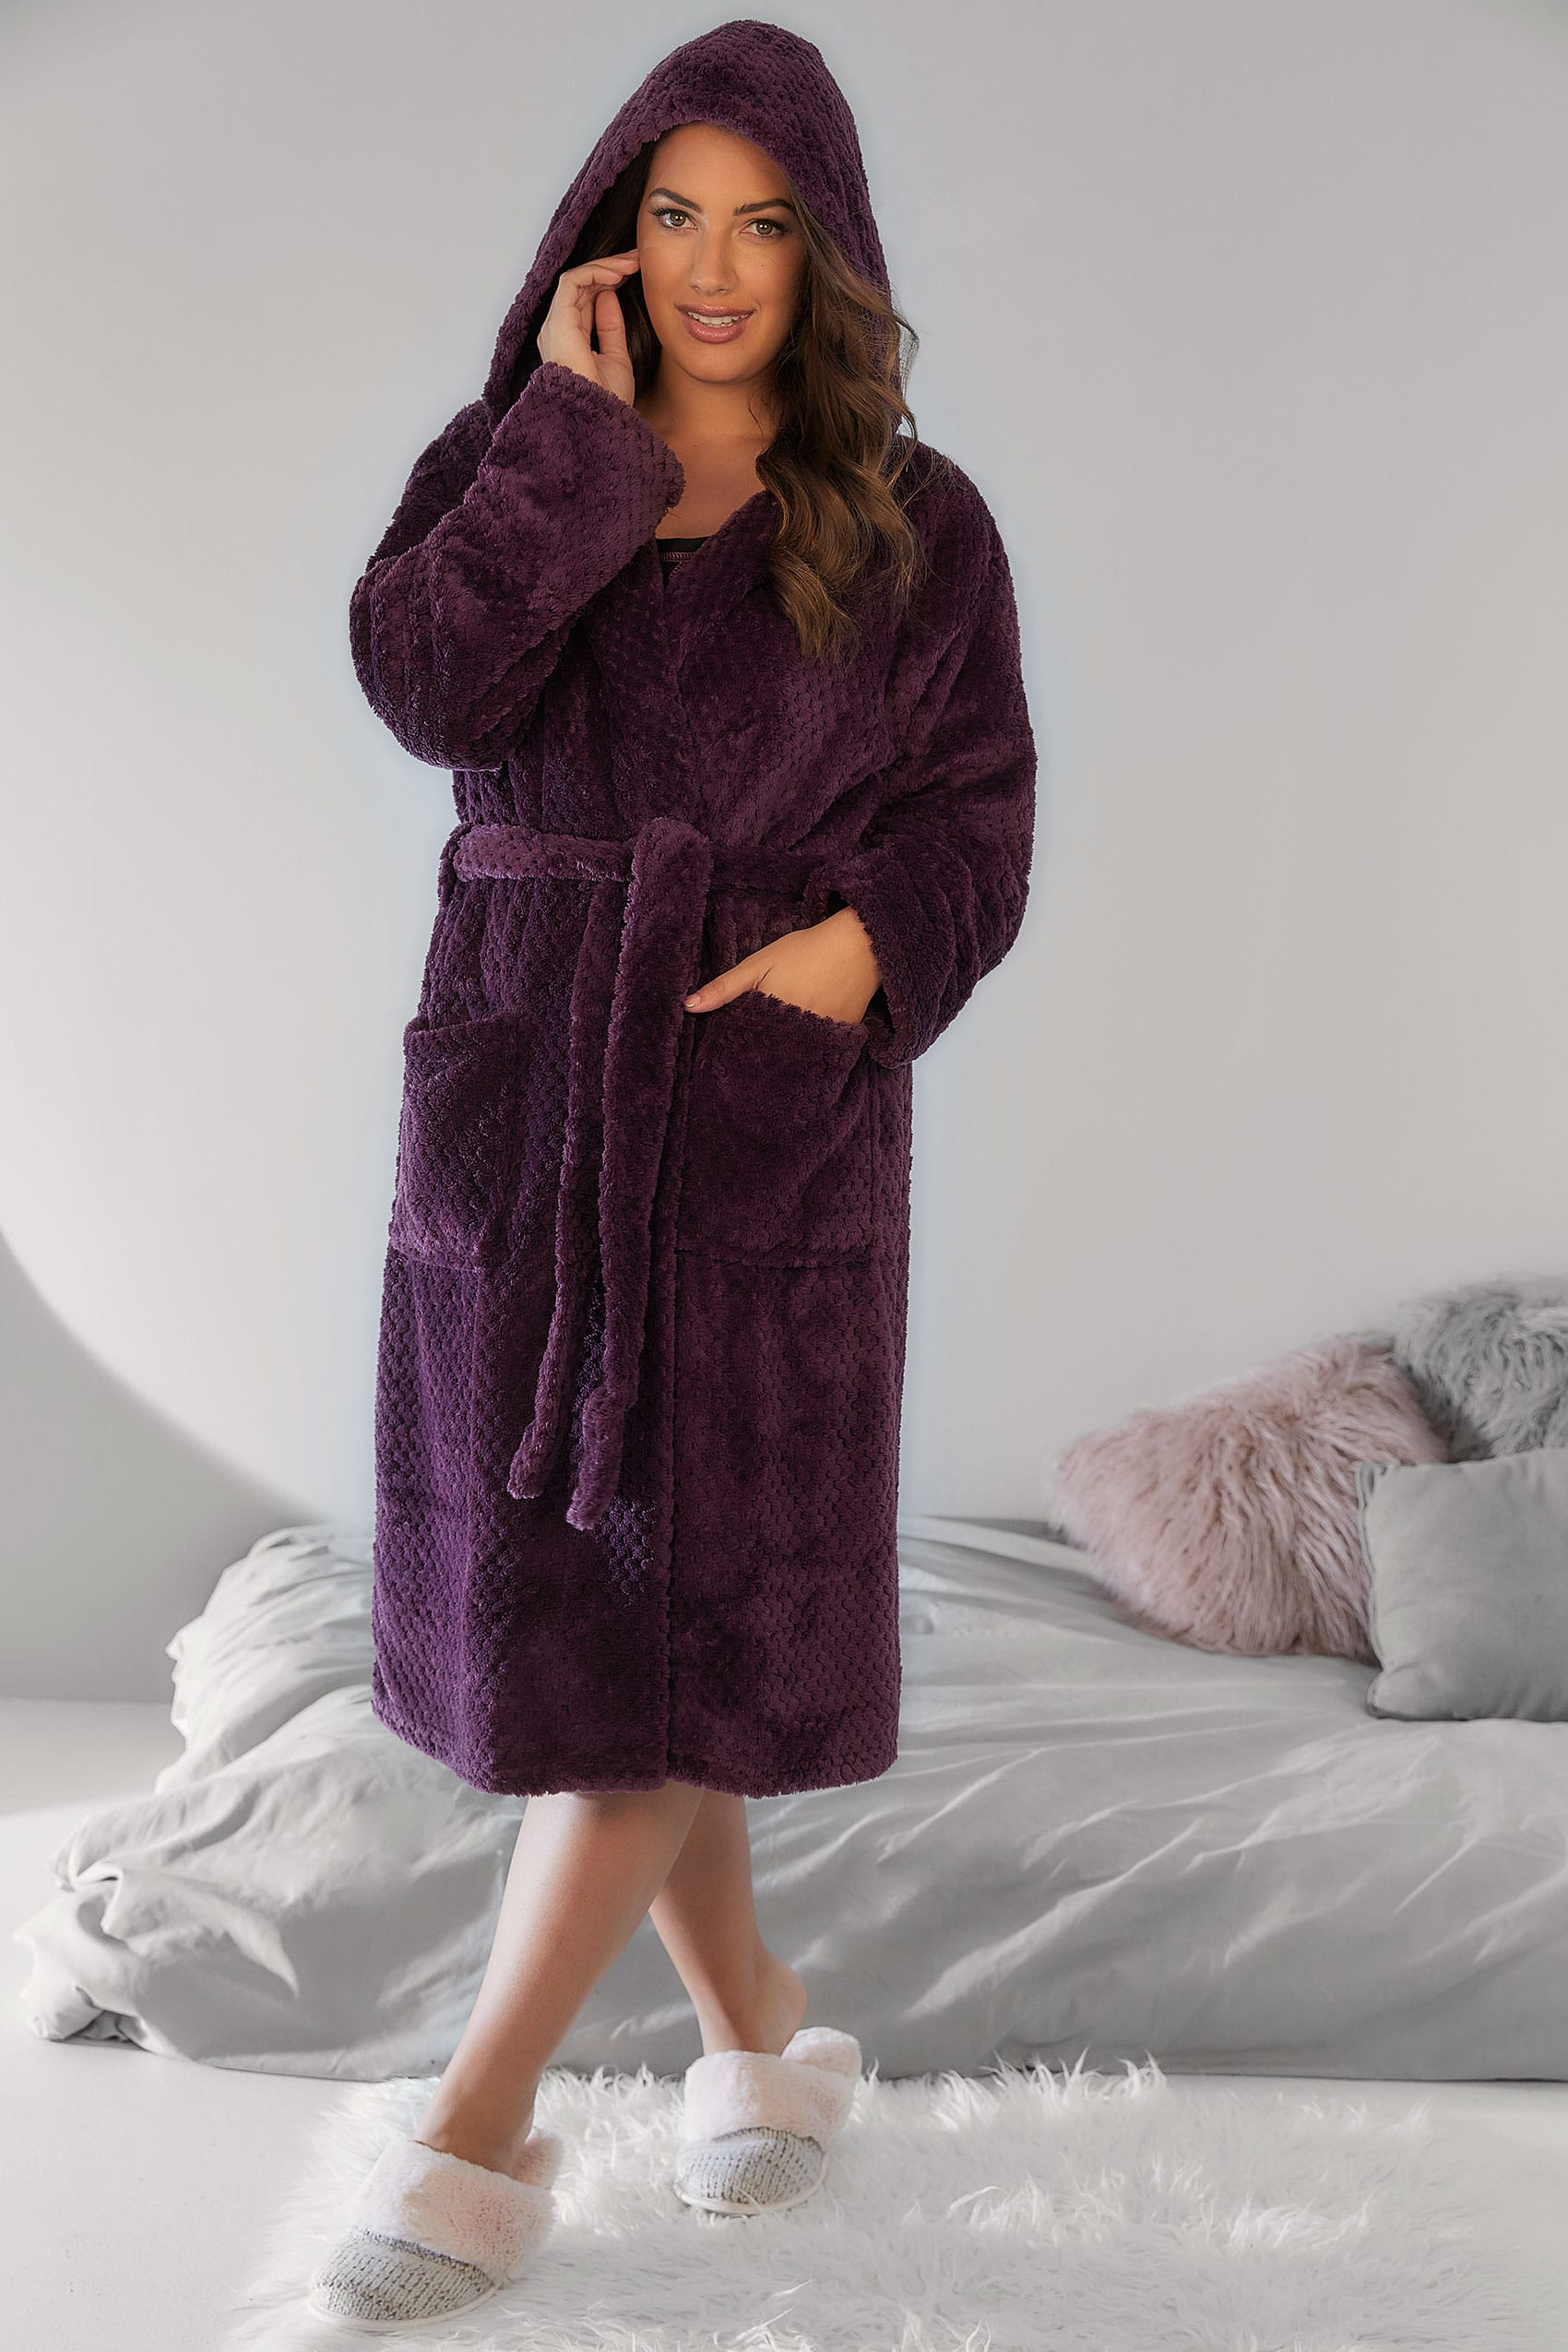 Purple Hooded Fleece Dressing Gown With Pockets, Plus size 16 to 36